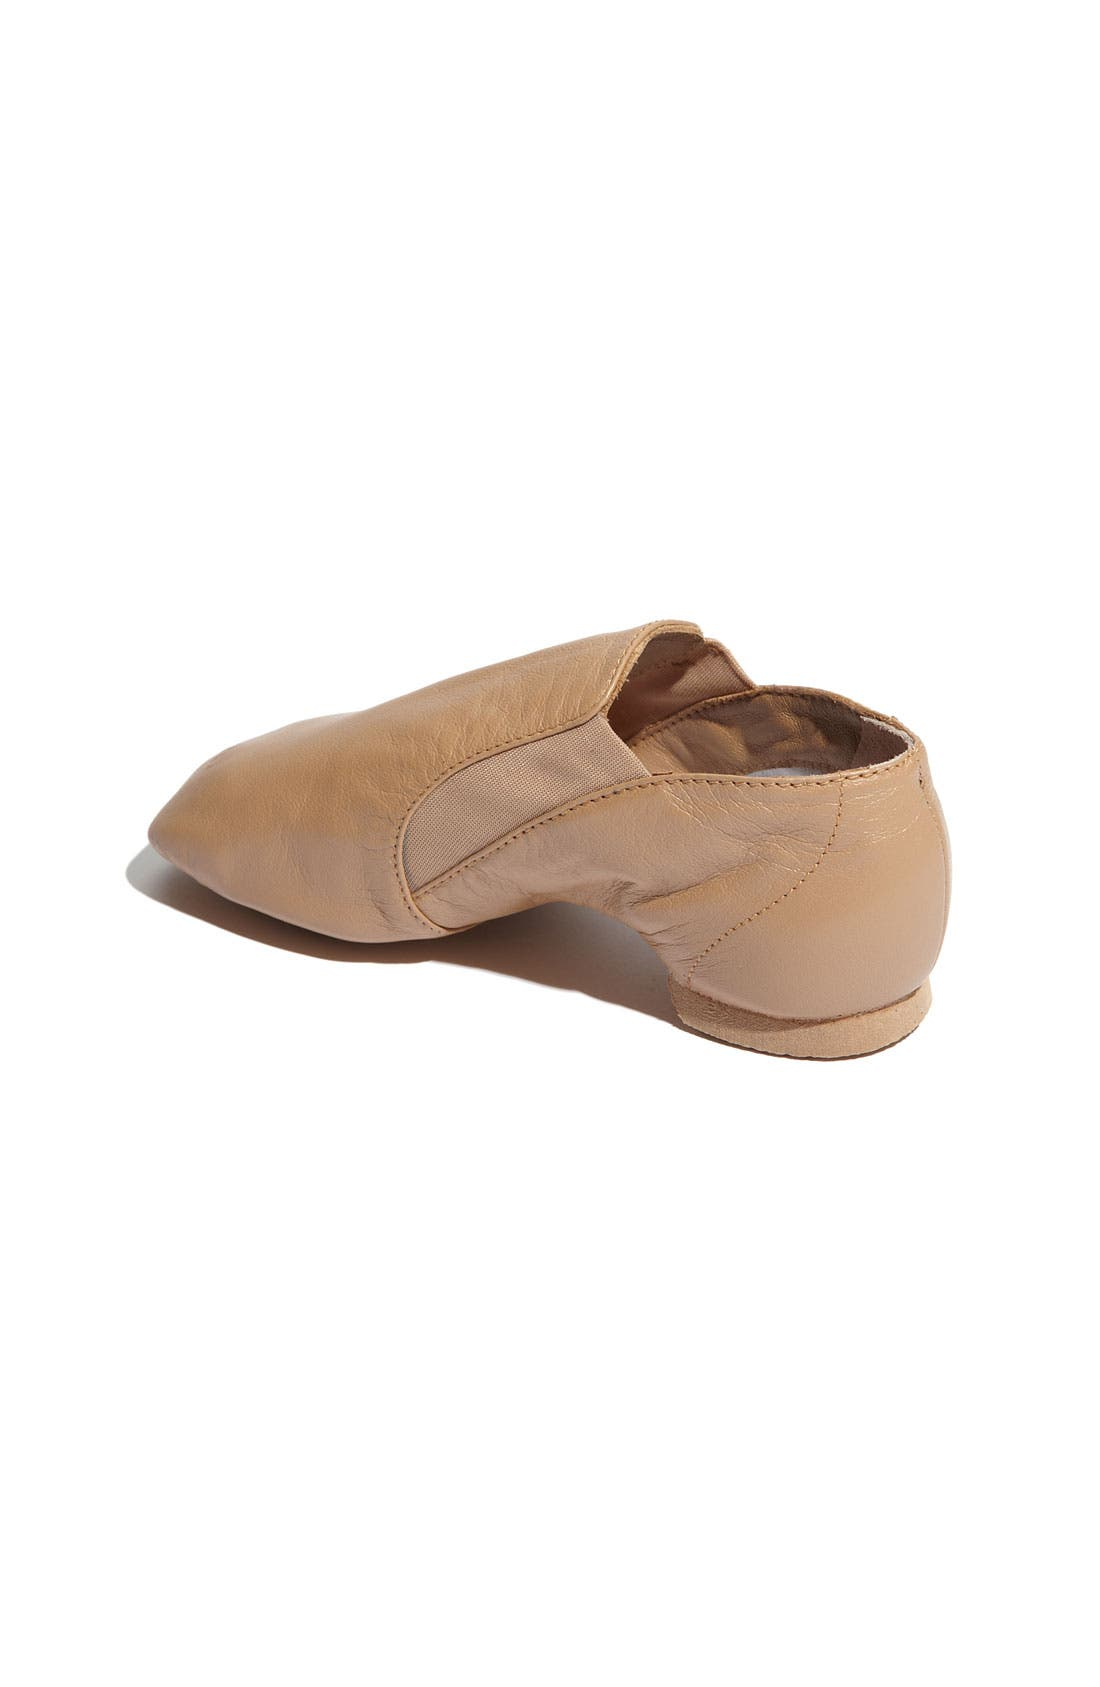 Alternate Image 2  - Bloch 'Elasta Bootie' Jazz Shoe (Toddler, Little Kid & Big Kid)